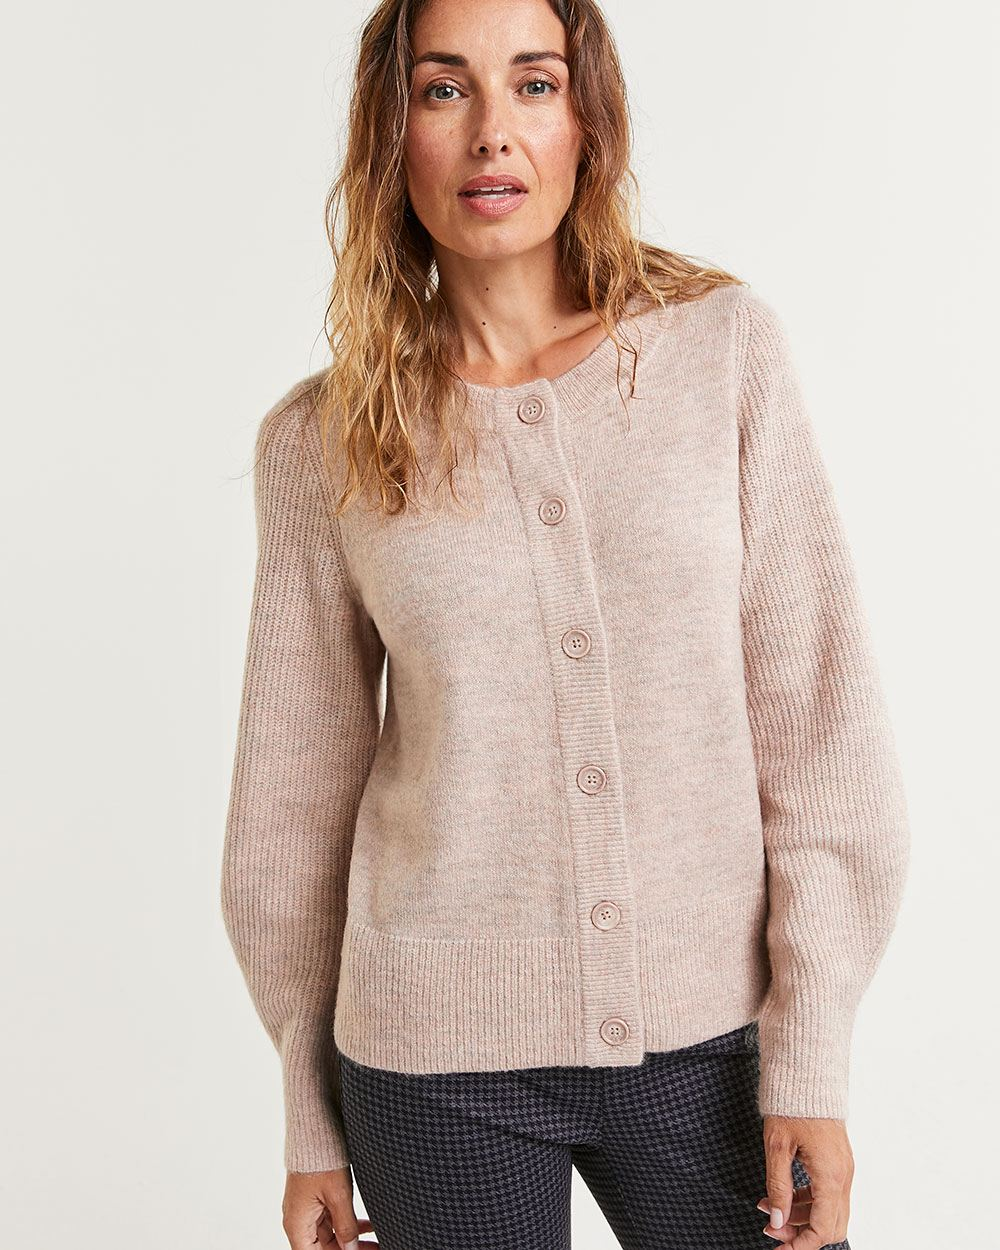 Balloon Sleeve Buttoned-Down Cardigan